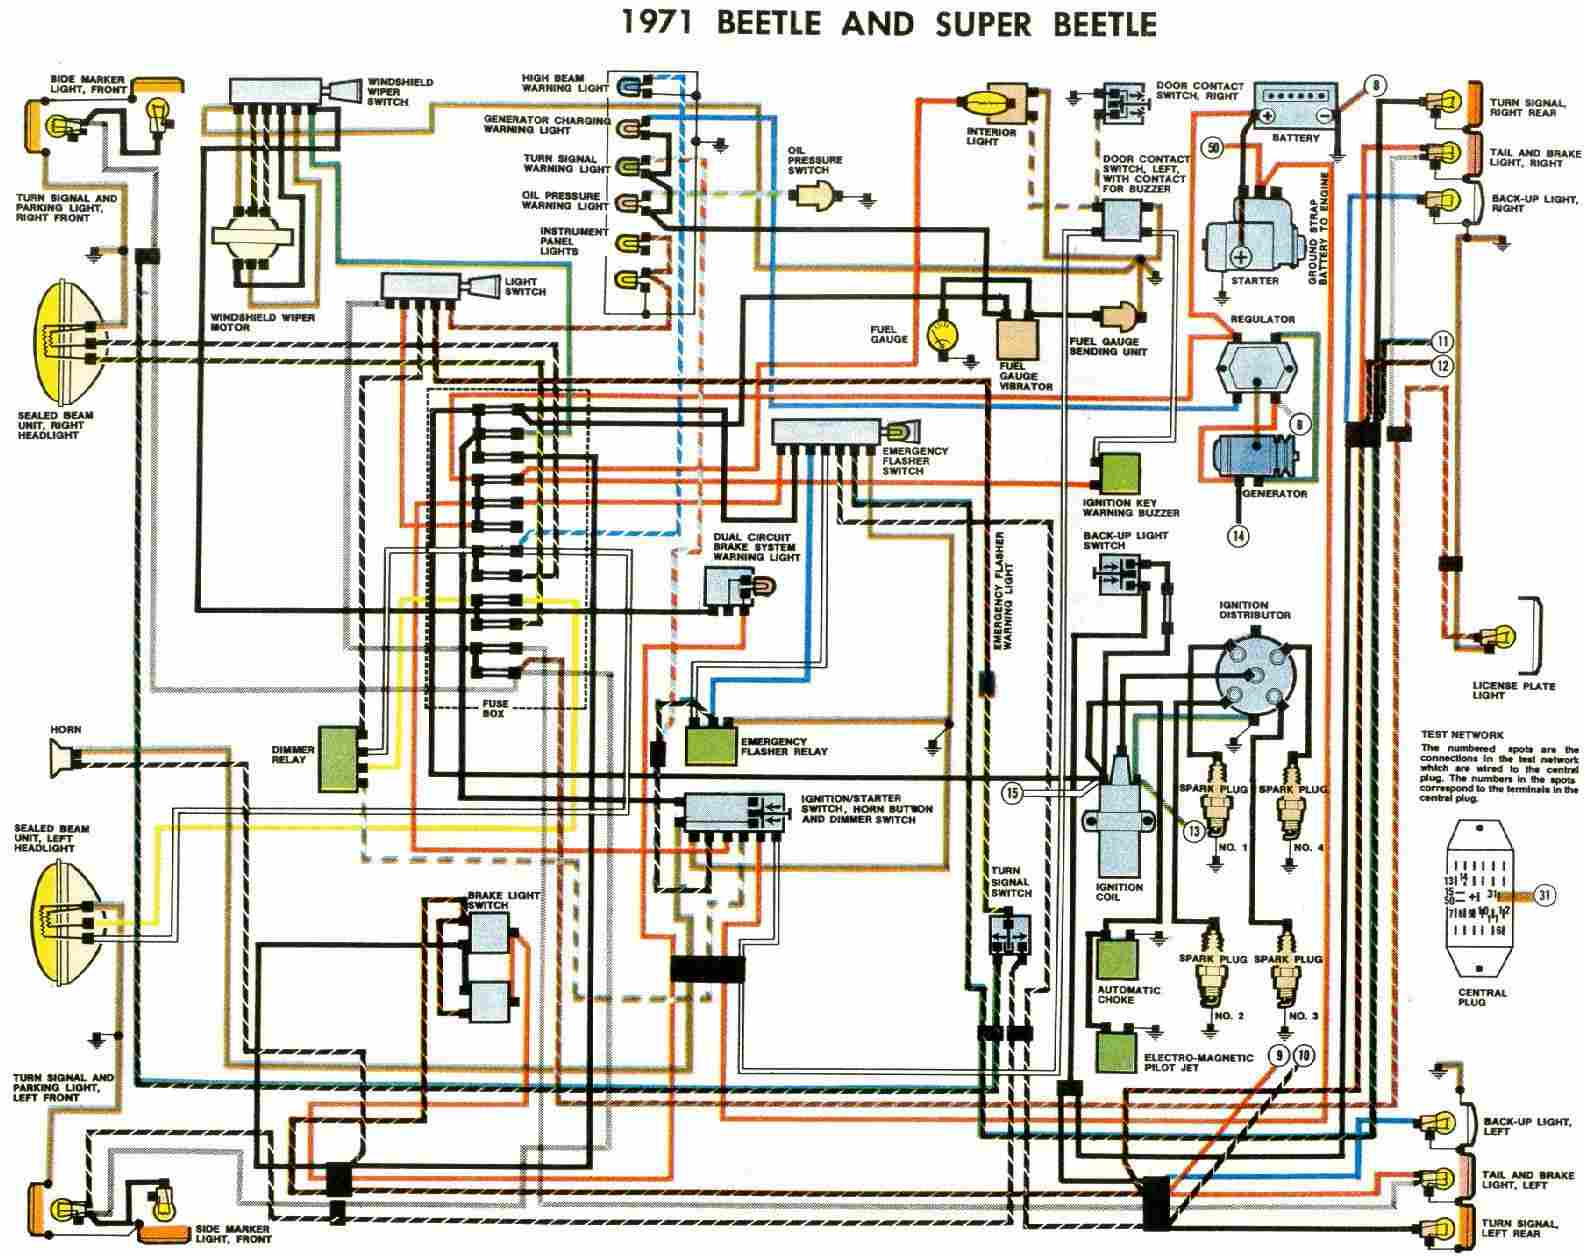 DIAGRAM] 1975 Vw Beetle Ignition Wiring Diagram FULL Version ... on